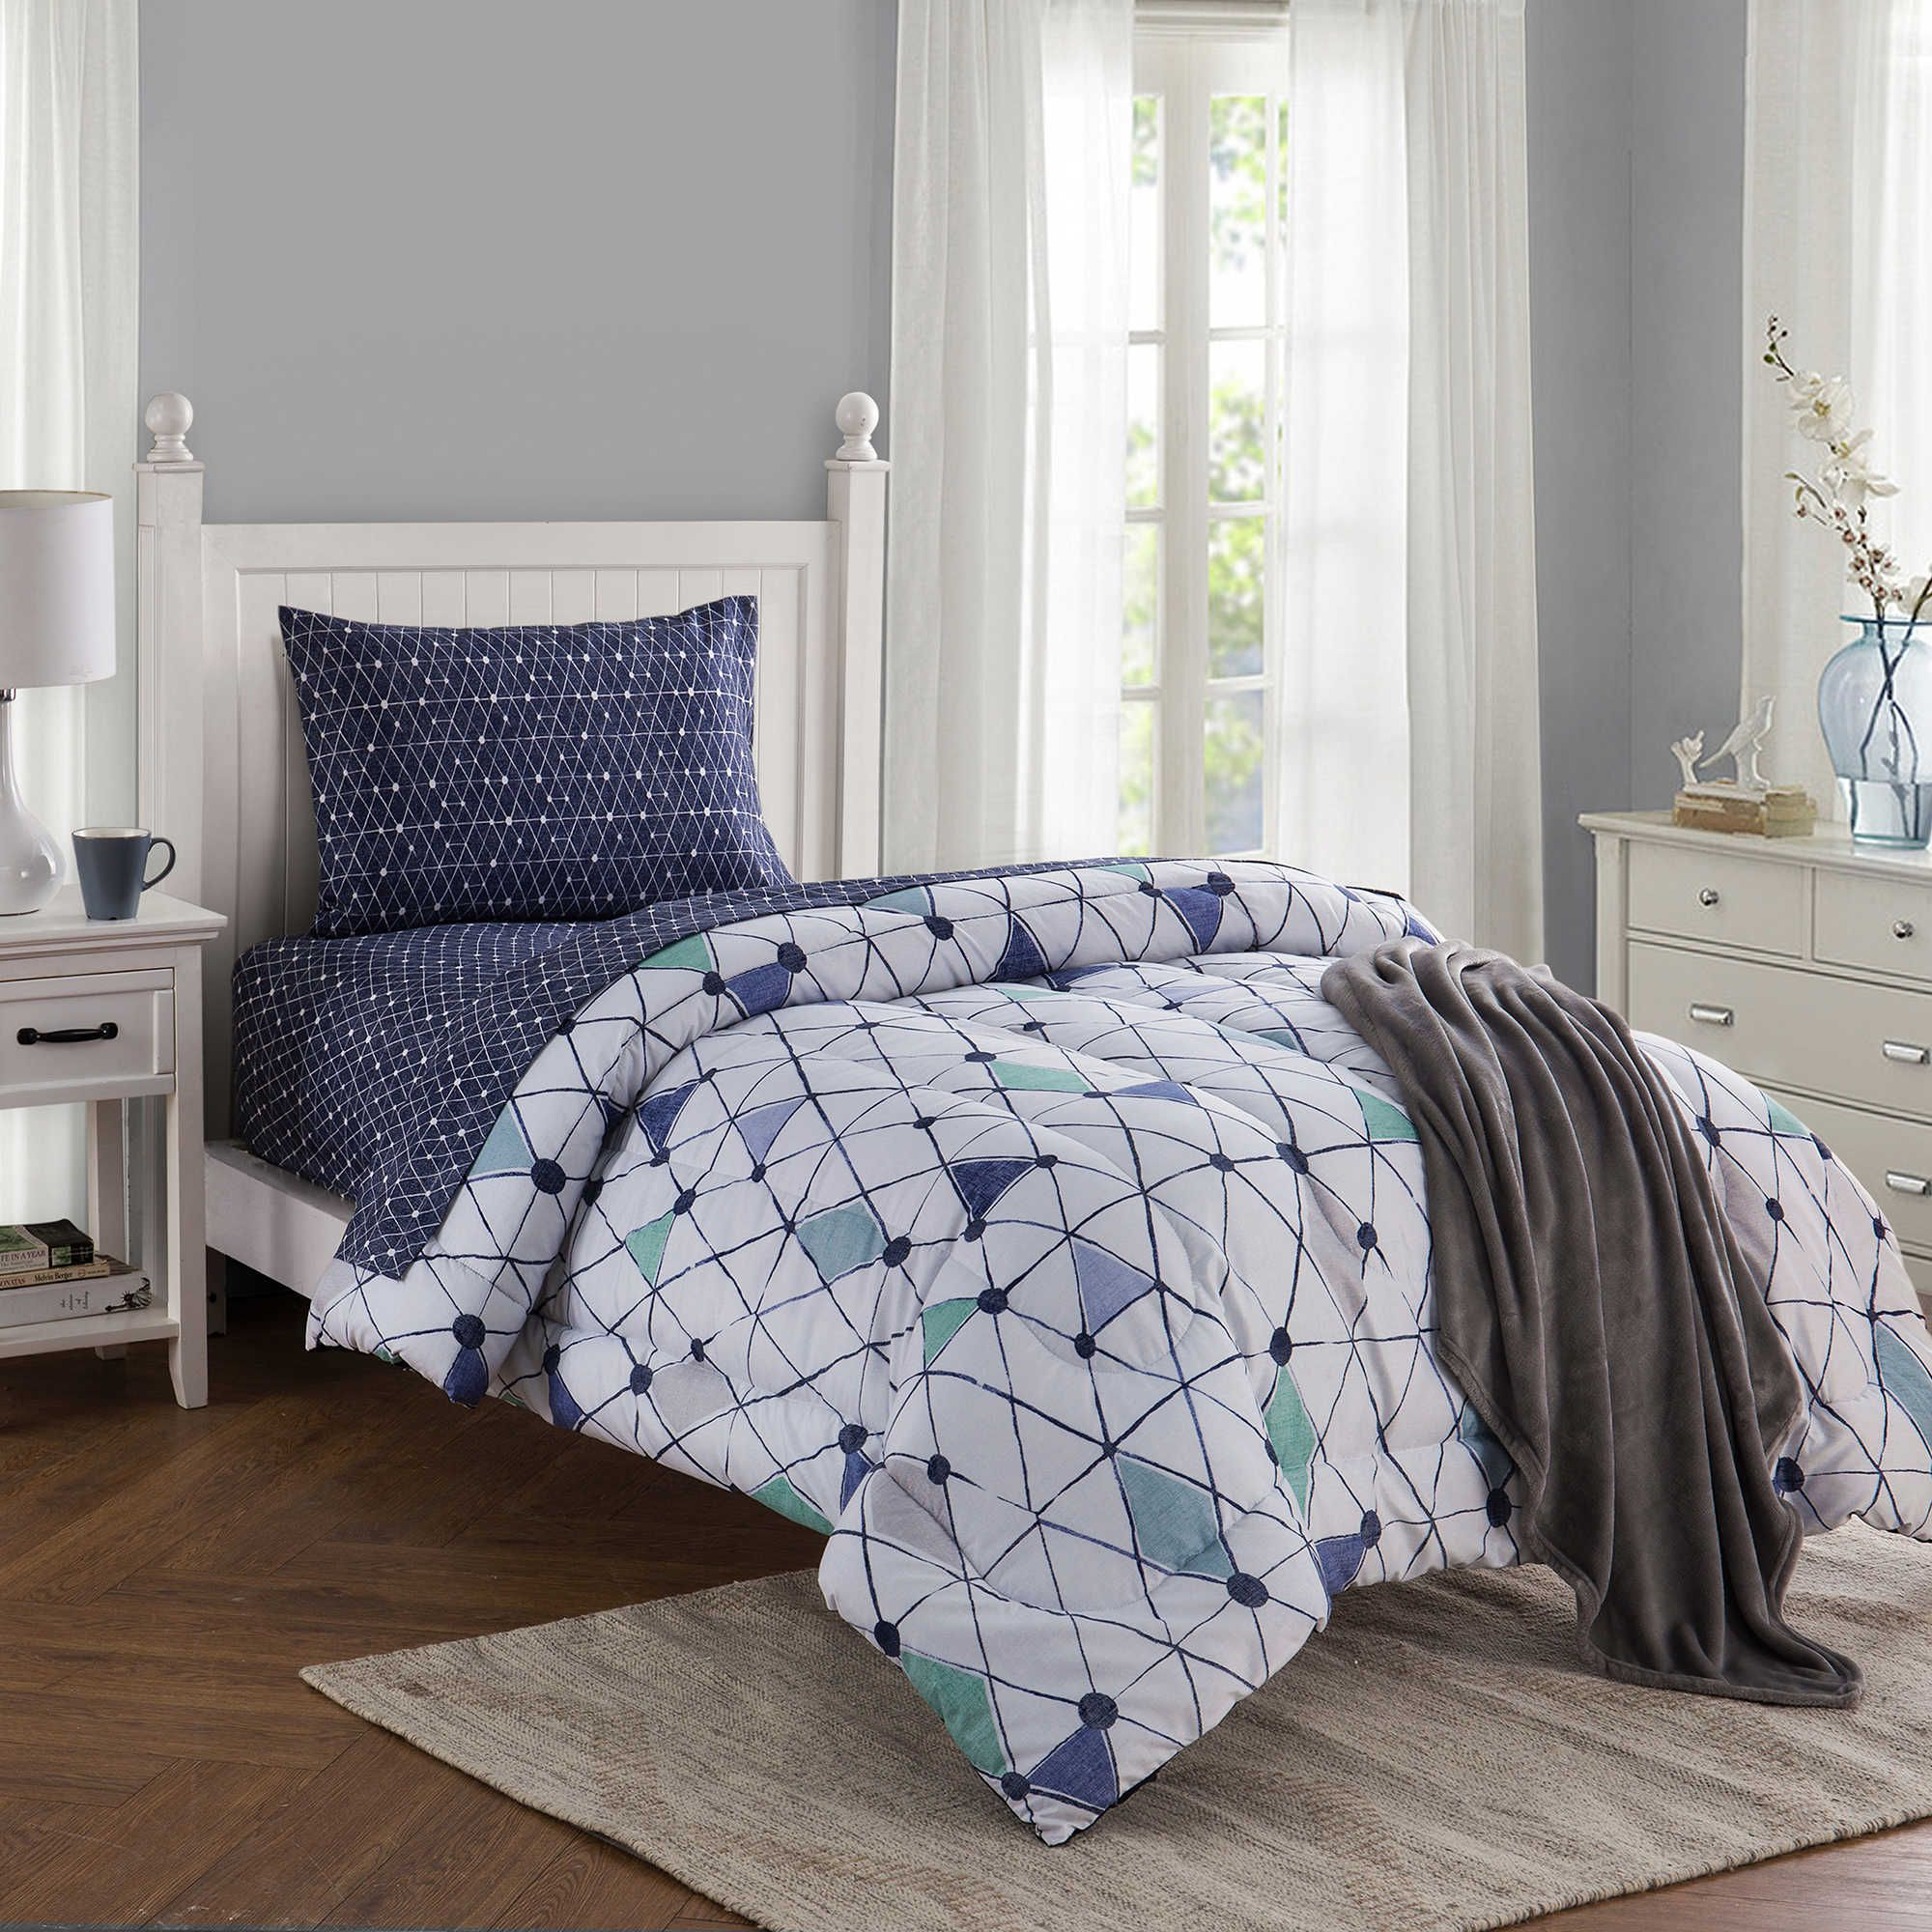 bed bedroom chevron for comforter and your best sheets bath bedding xl twin comforters design beyond attractive